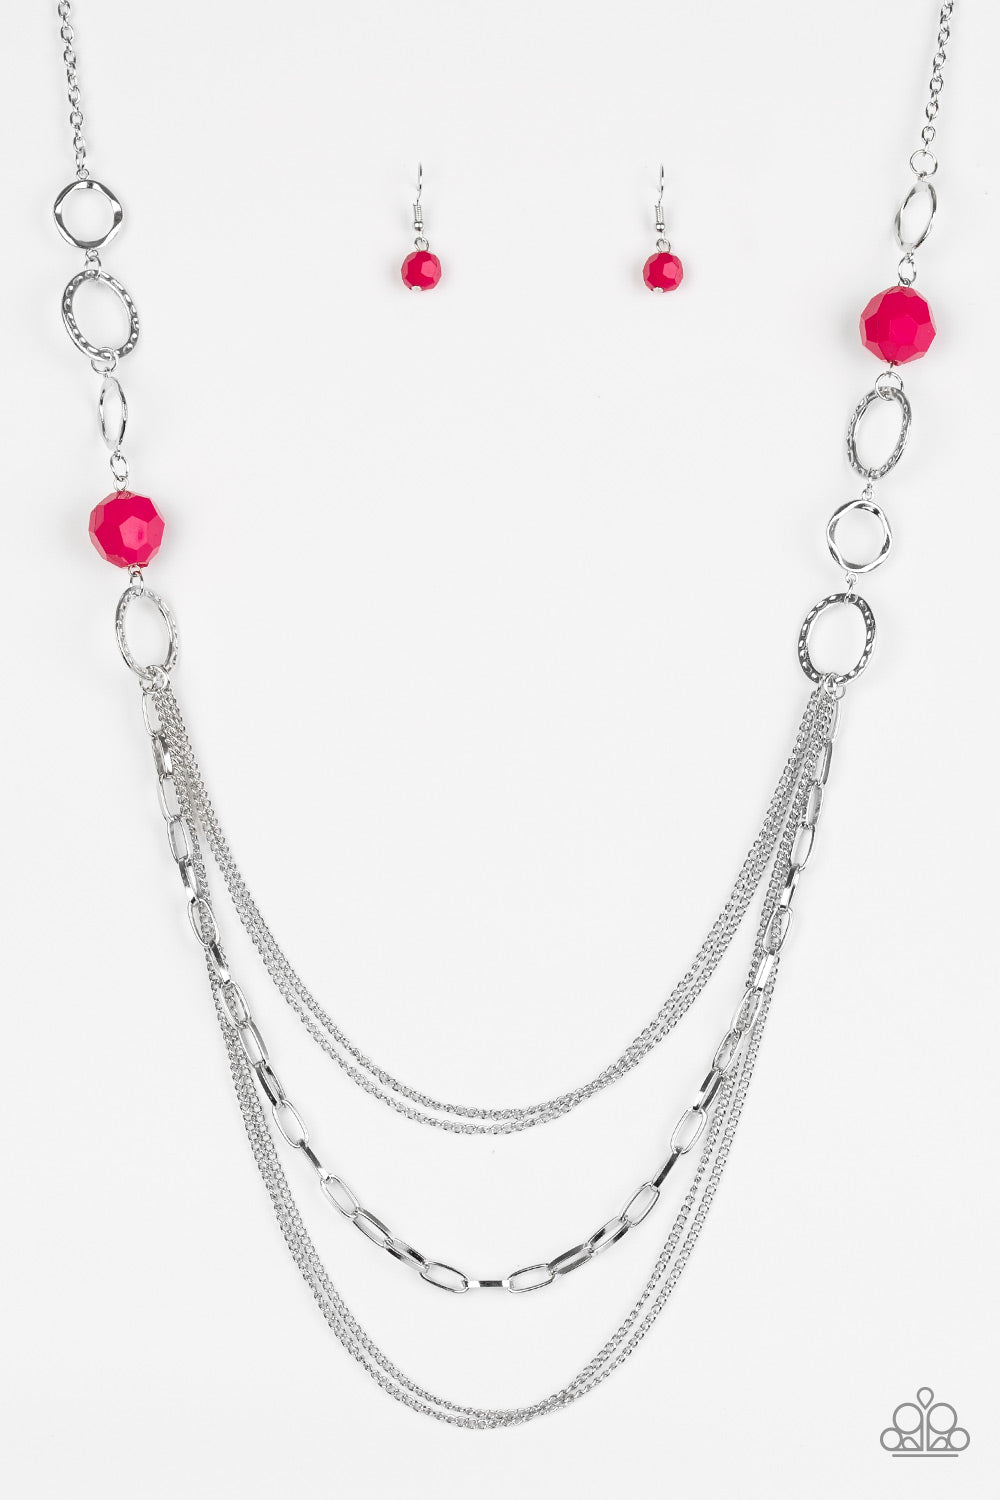 five-dollar-jewelry-margarita-masquerades-pink-necklace-paparazzi-accessories